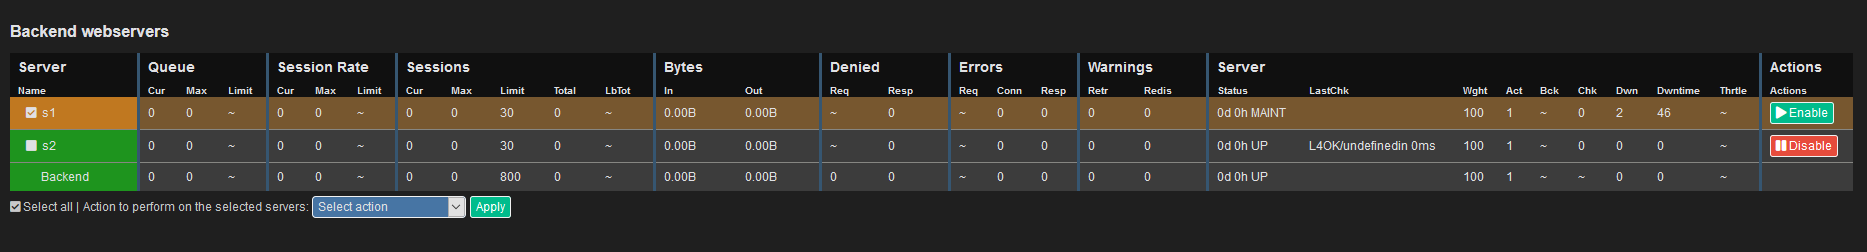 [Disable a server in the Real Time Dashboard]